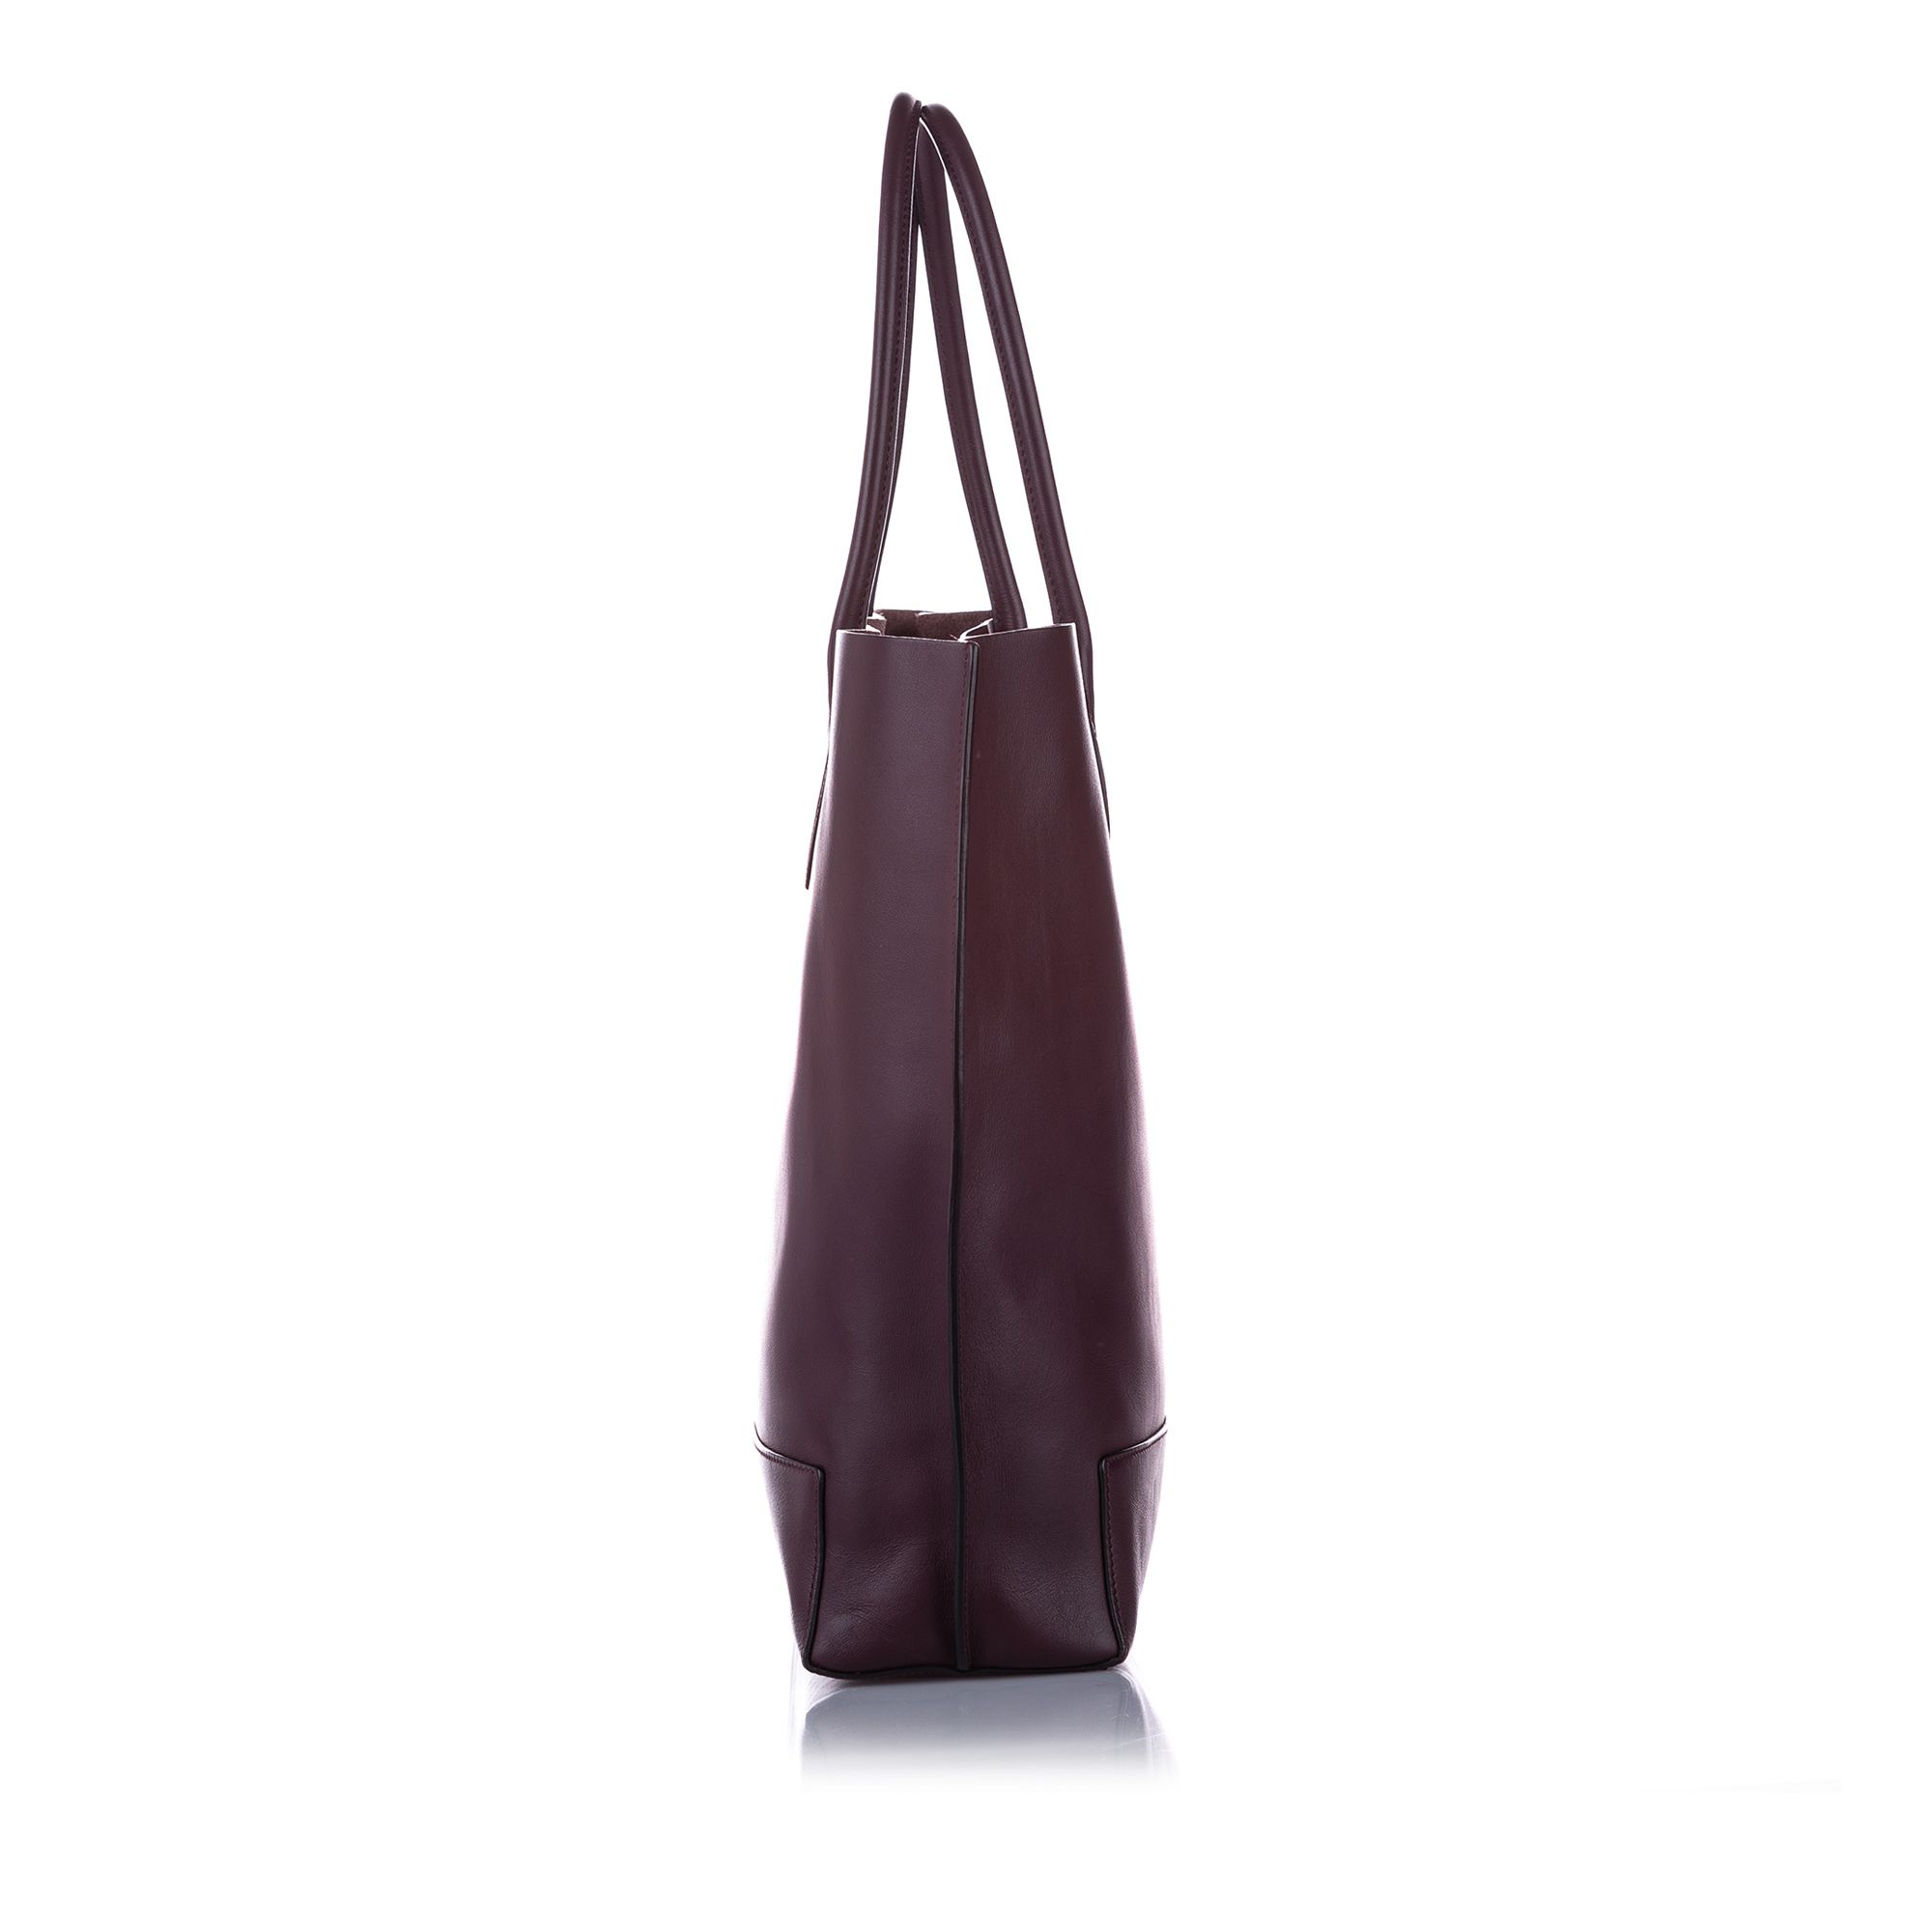 Vintage Mulberry Leather Tote Bag Red